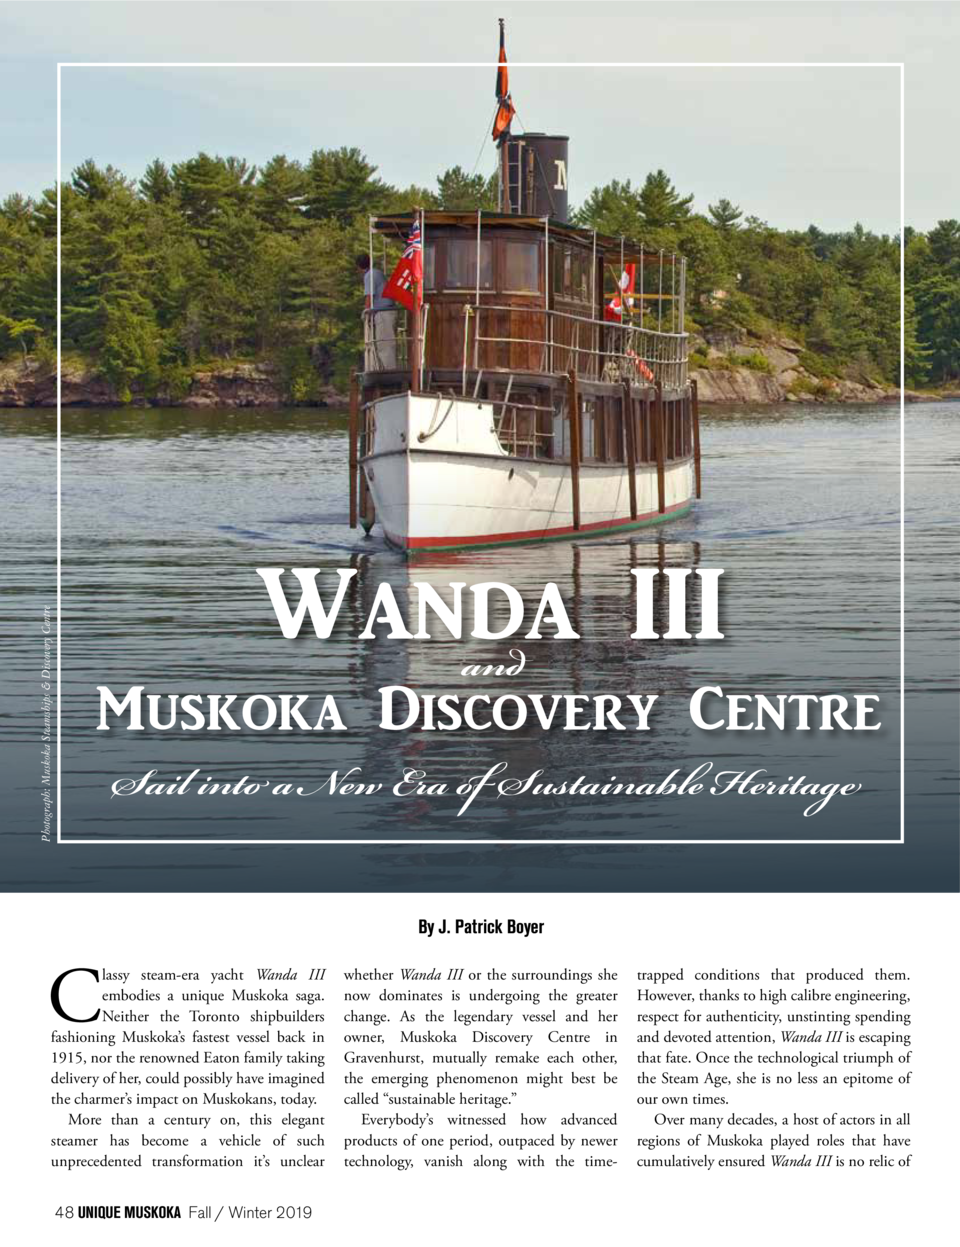 Photograph  Muskoka Steamships   Discovery Centre  Wanda III and  Muskoka Discovery Centre Sail into a New Era of Sustaina...